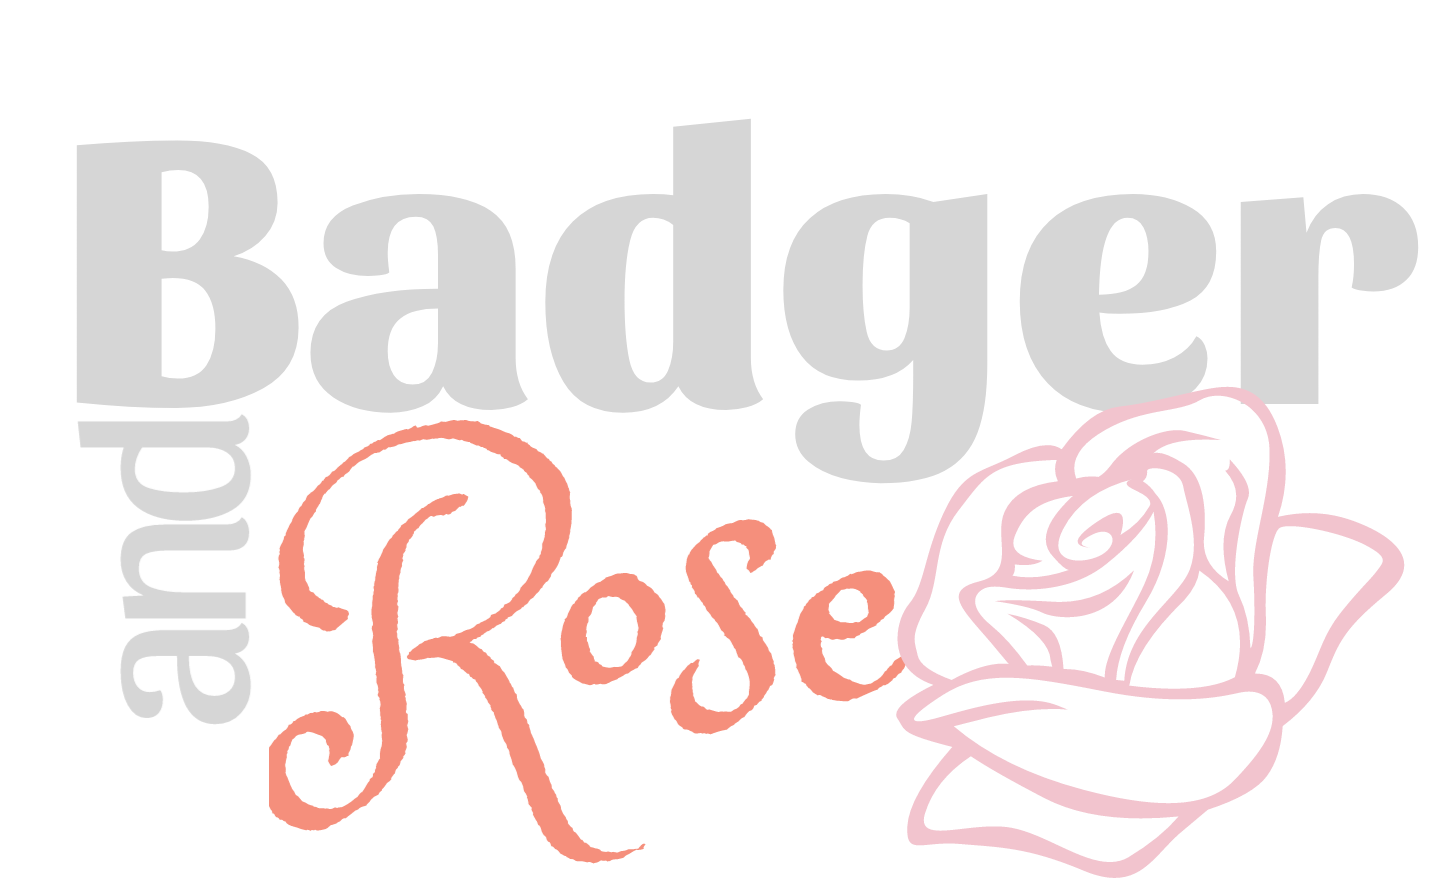 Badger and Rose